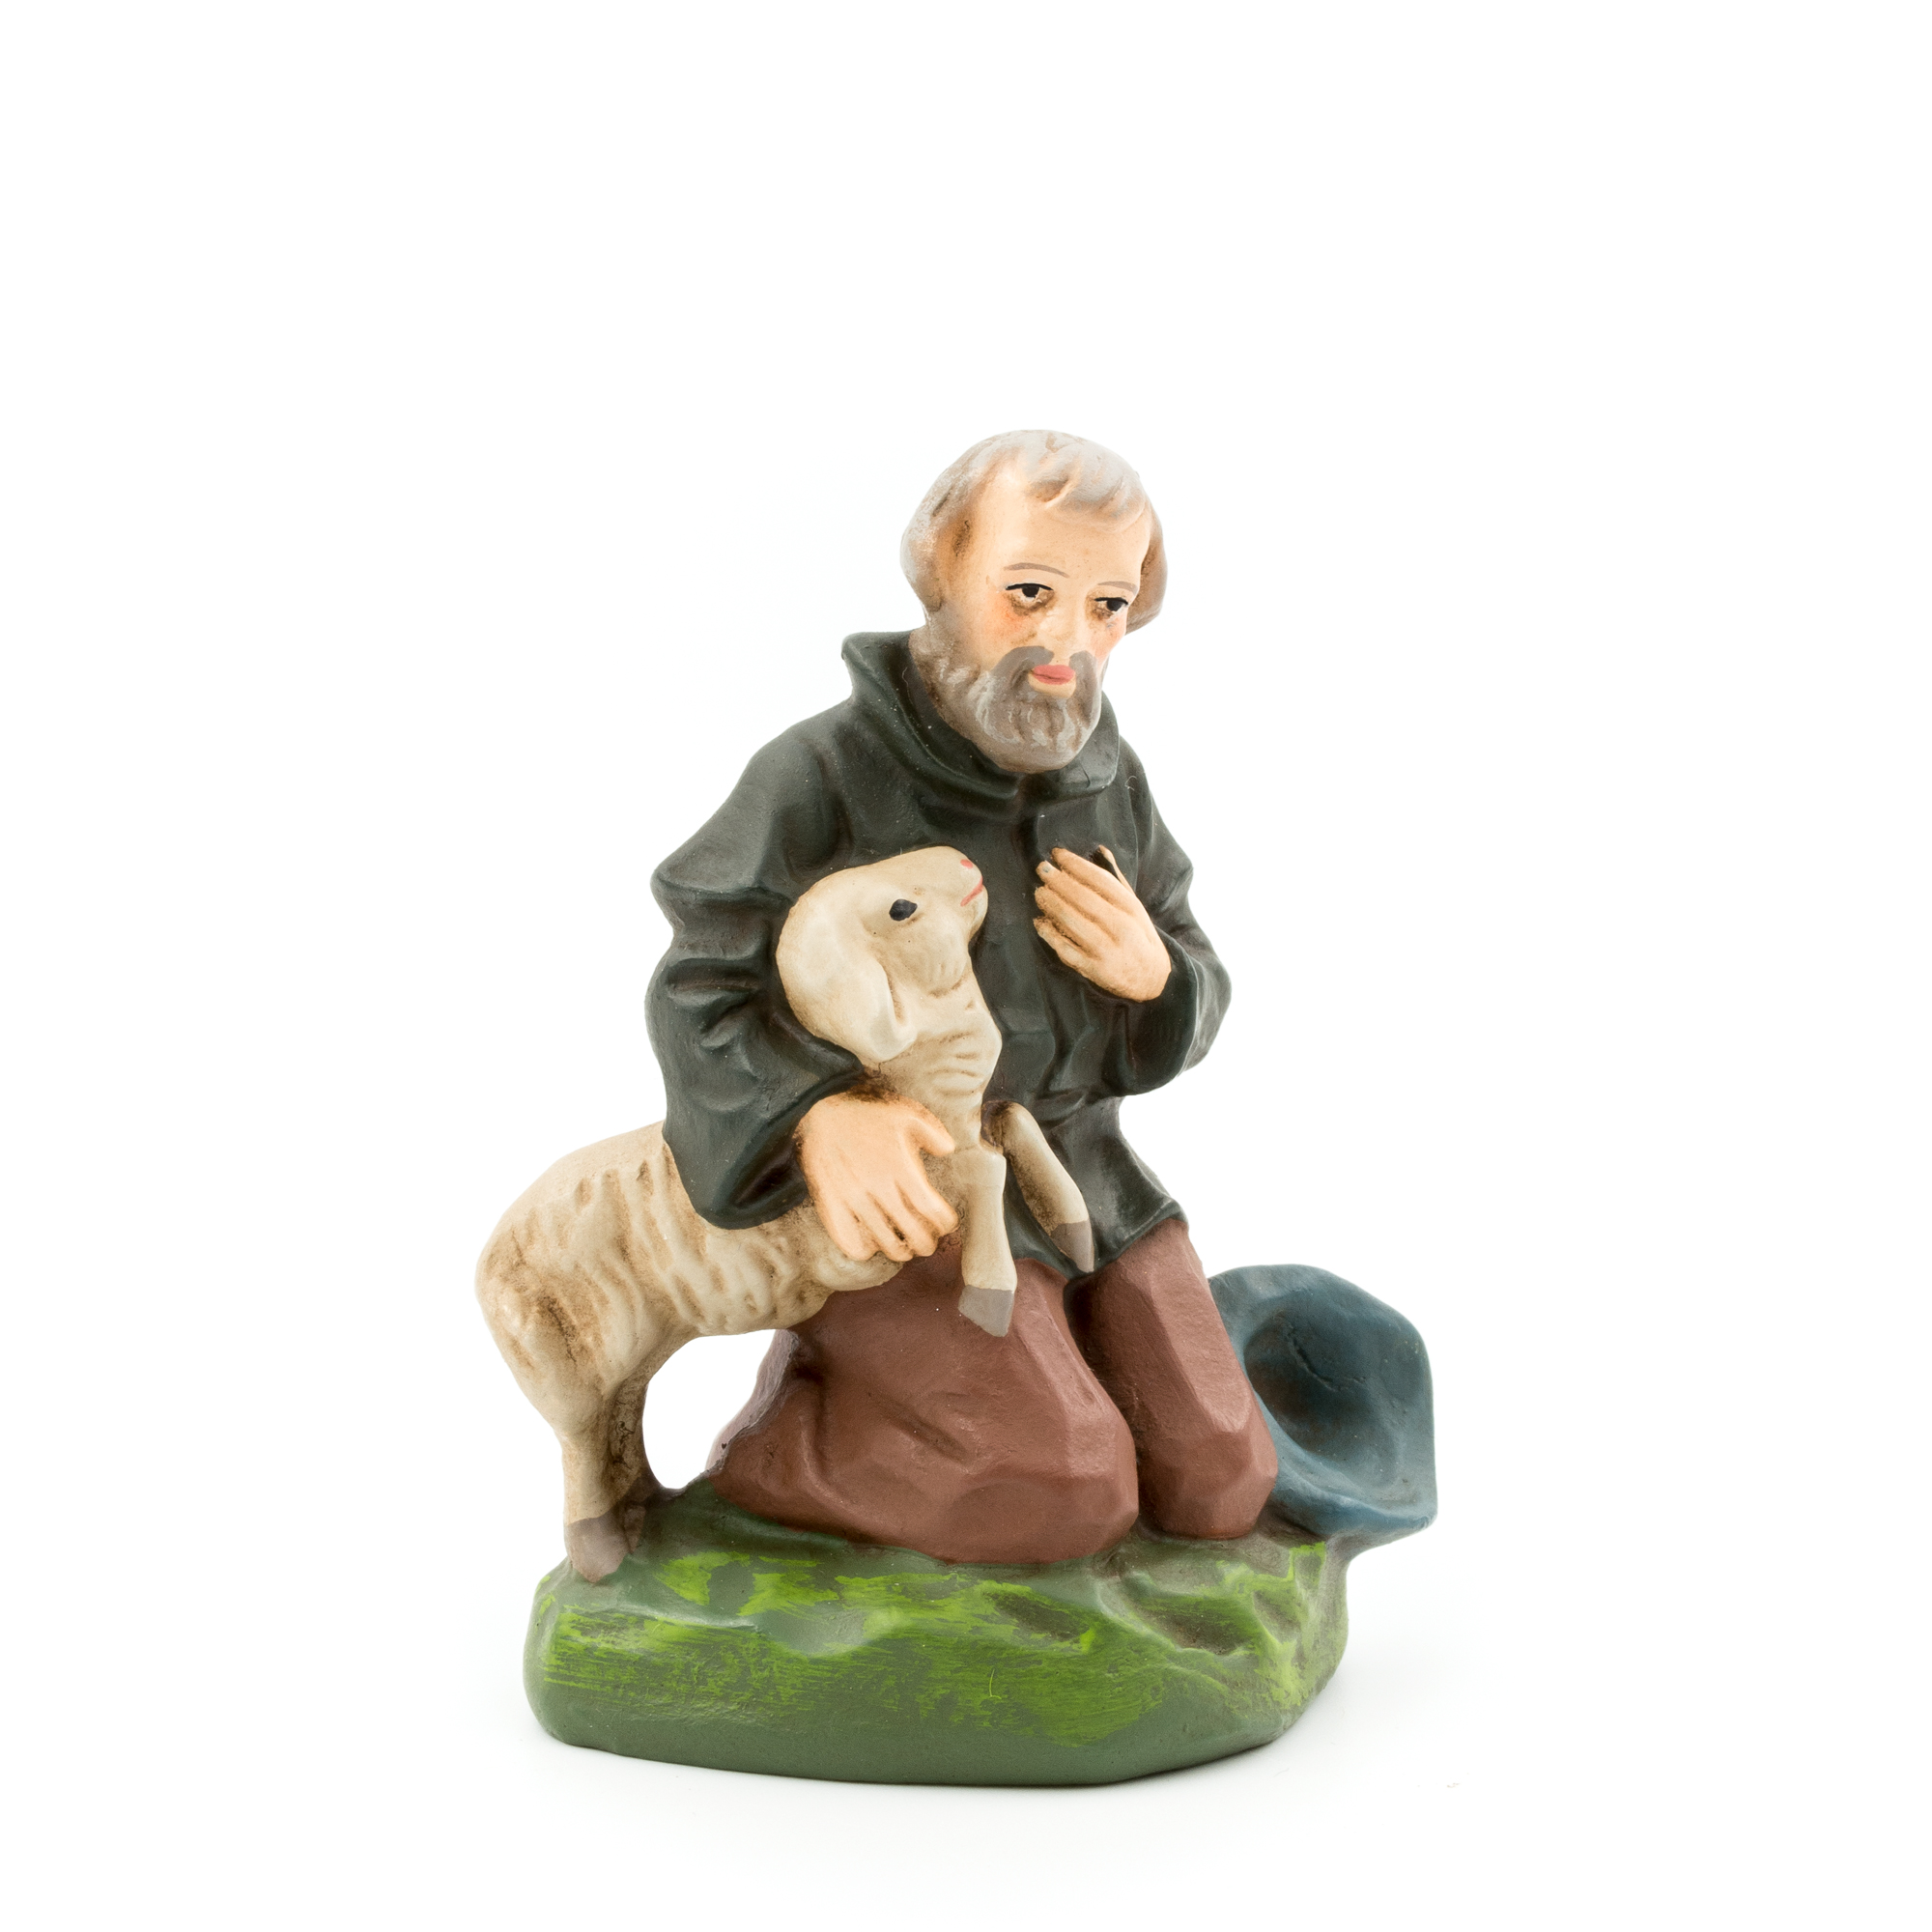 Marolin Paper Mache Shepherd Kneeling With Sheep 3 5 Mini Nativity Figure Ebay